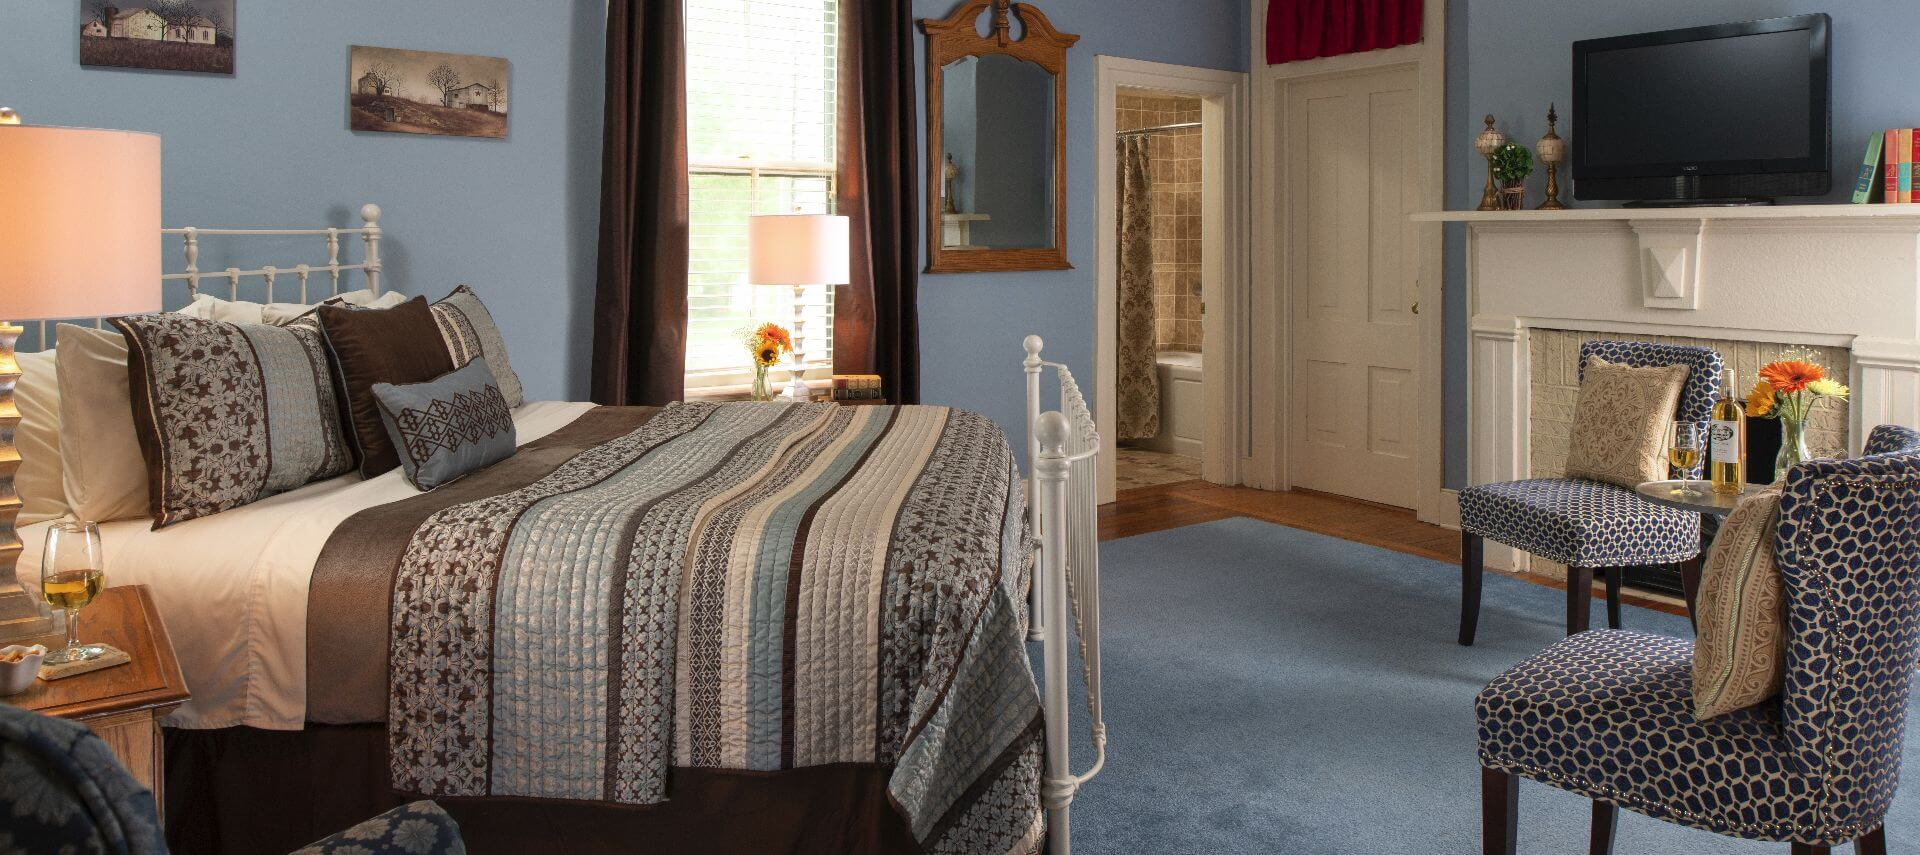 Comfortable room with blue walls and carpet and a white bedstead.